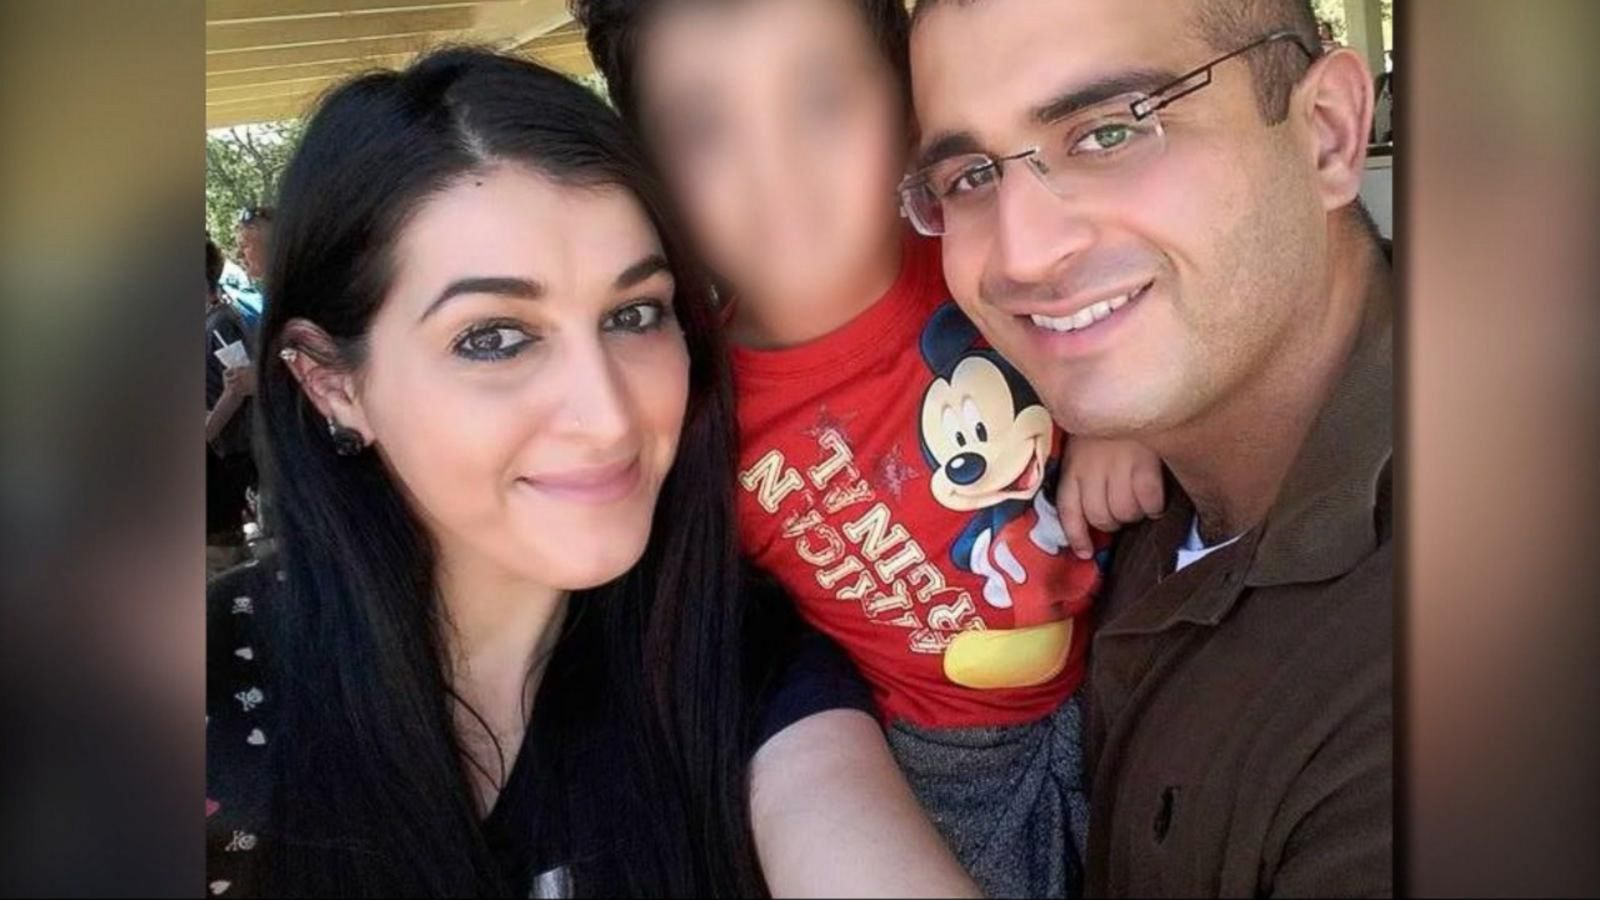 VIDEO: Pulse Nightclub Shooter's Widow Arrested